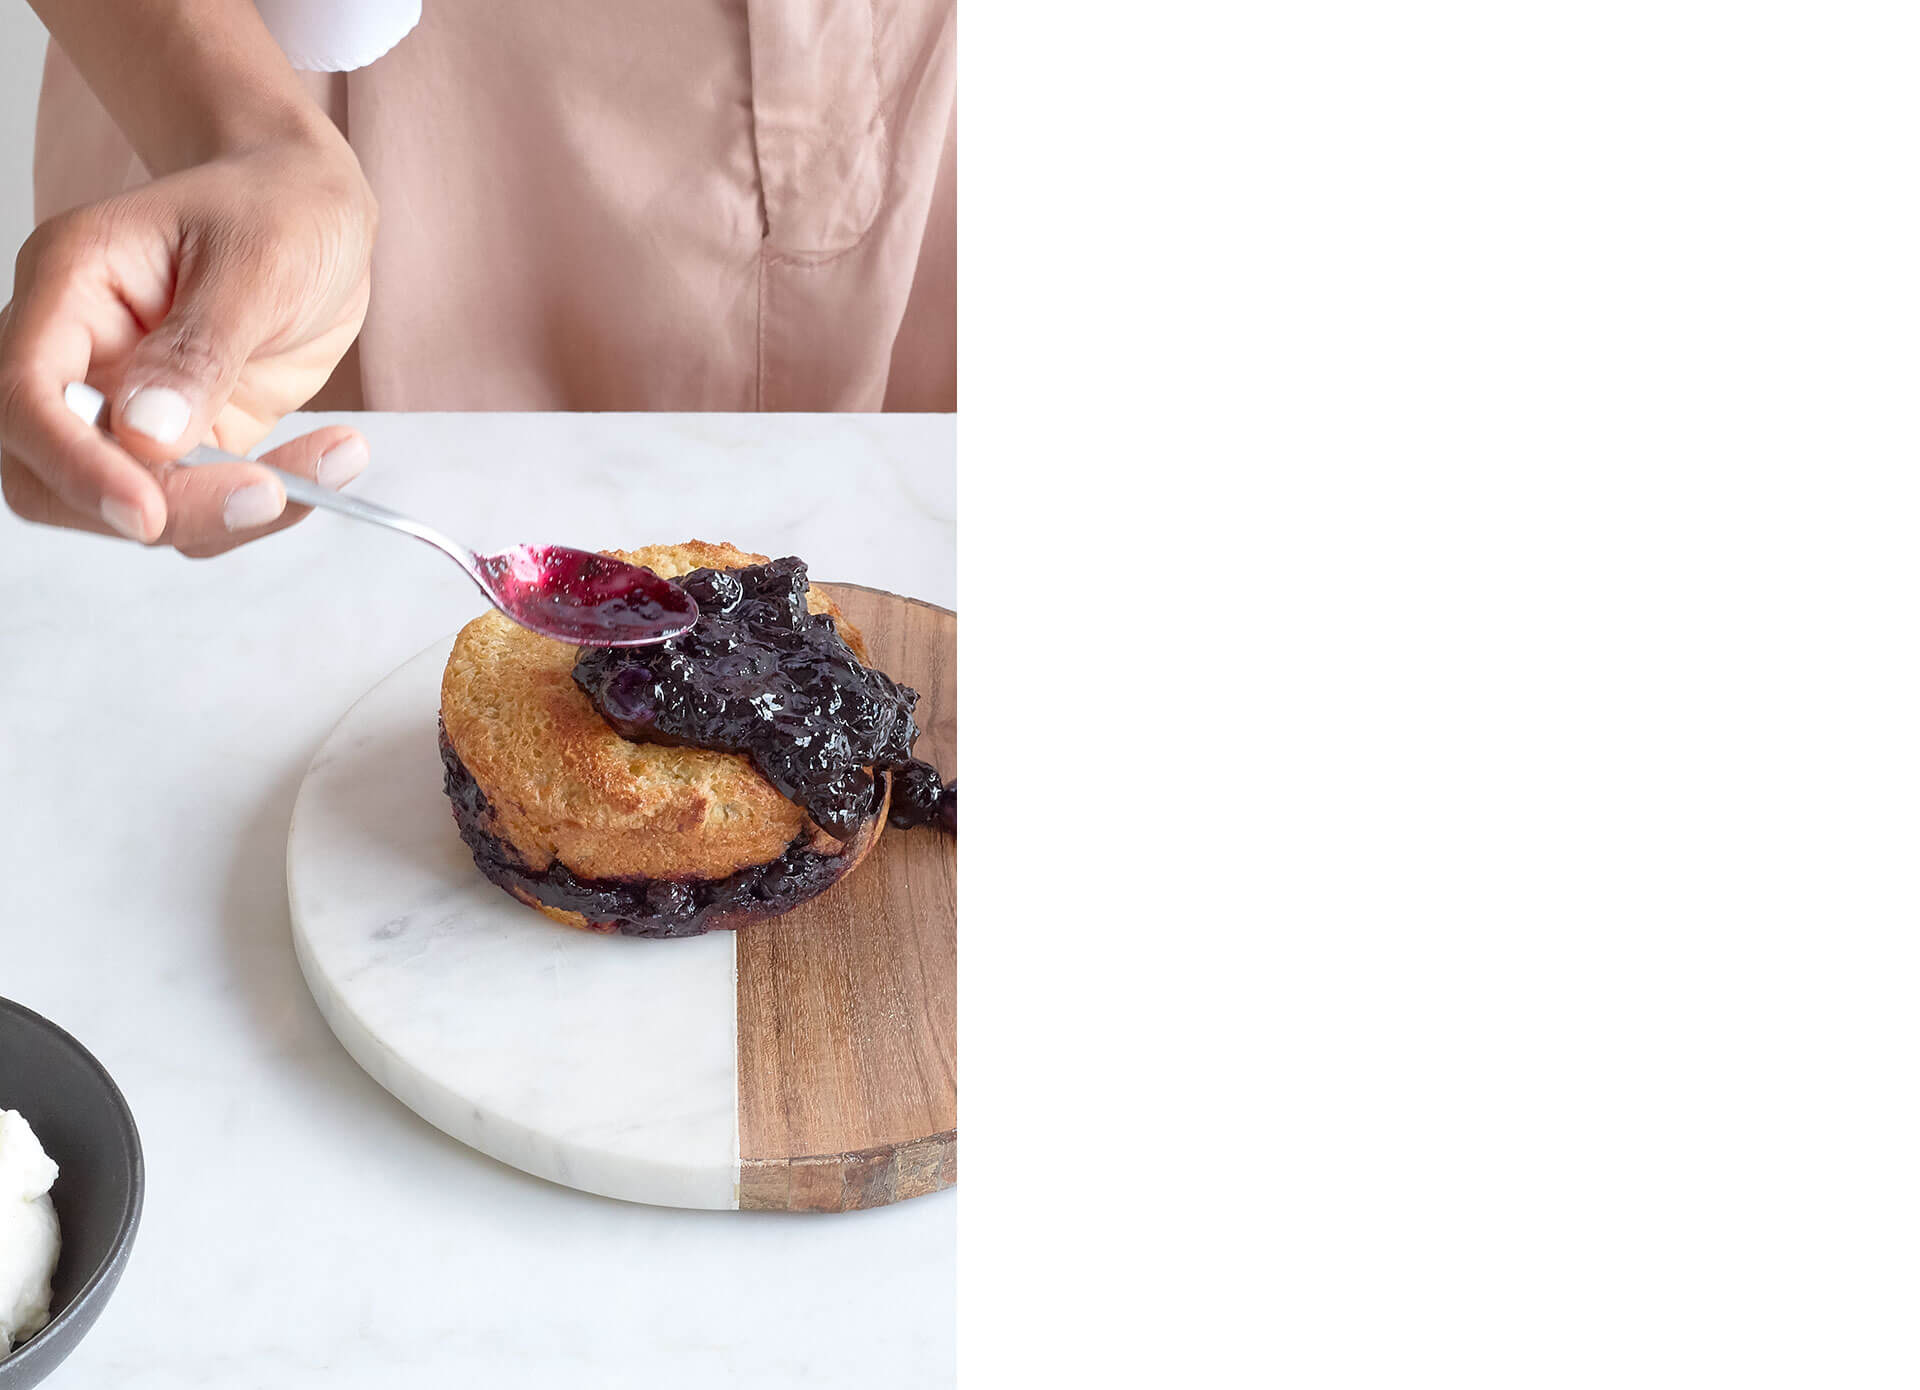 Woman spreads blueberry sauce with a spoon over french toast cake.